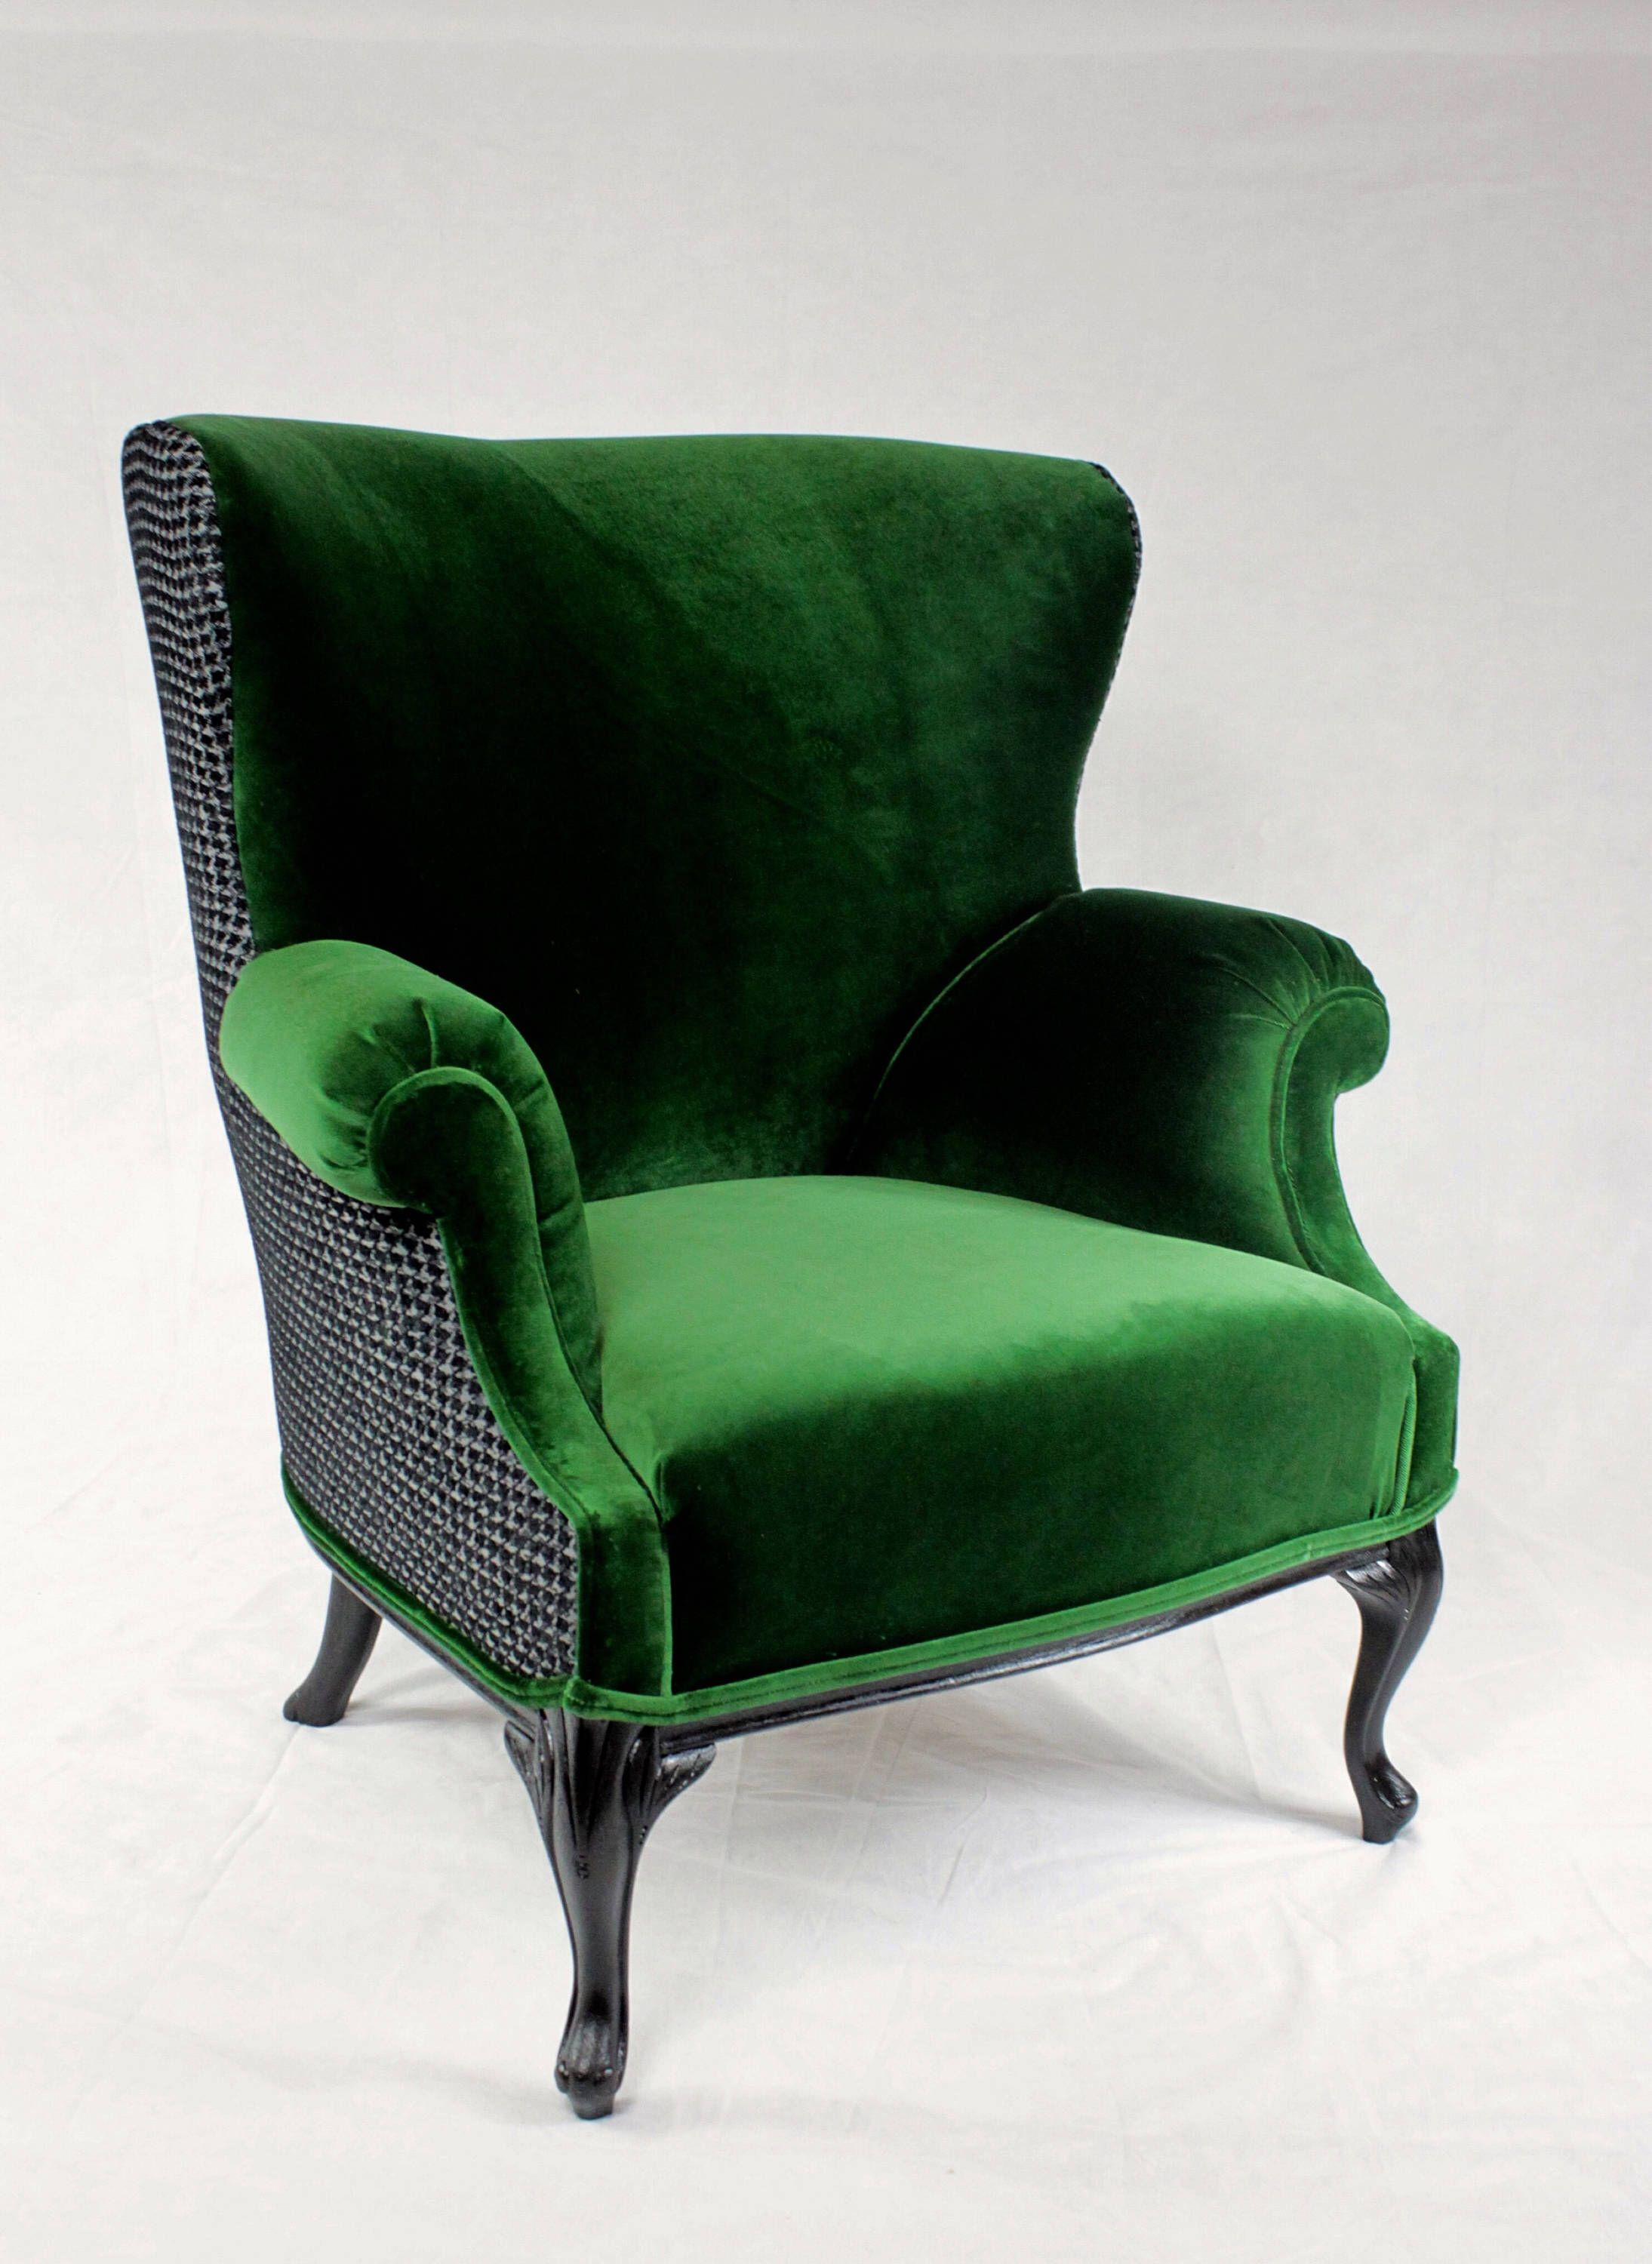 Sessel Le Vieux Sold Can Replicate Vintage Round Wing Back Chair With Green